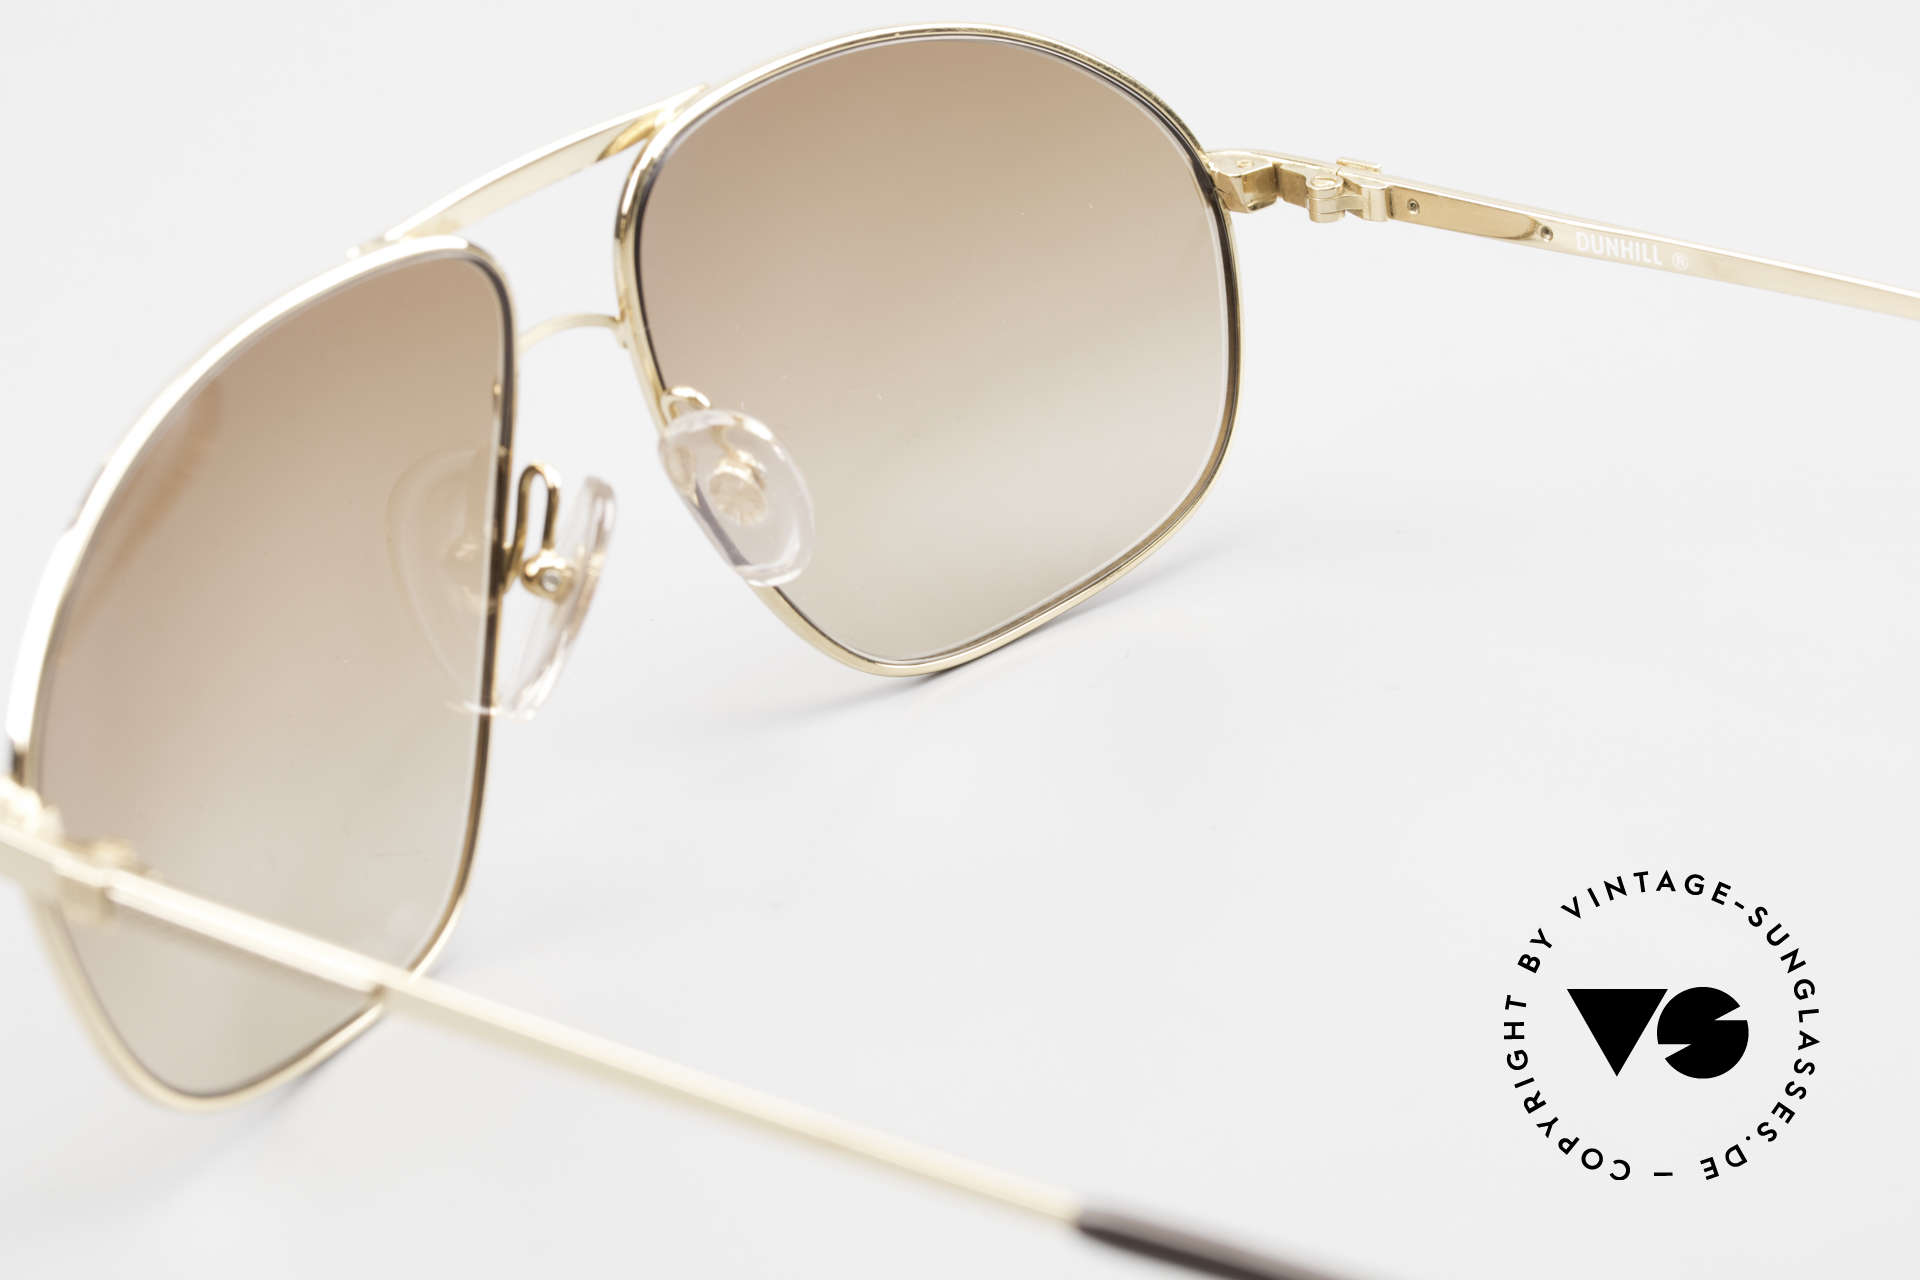 Dunhill 6125 Gold Plated Aviator Frame 90's, NO RETRO SUNGLASSES, but a precious old ORIGINAL!, Made for Men